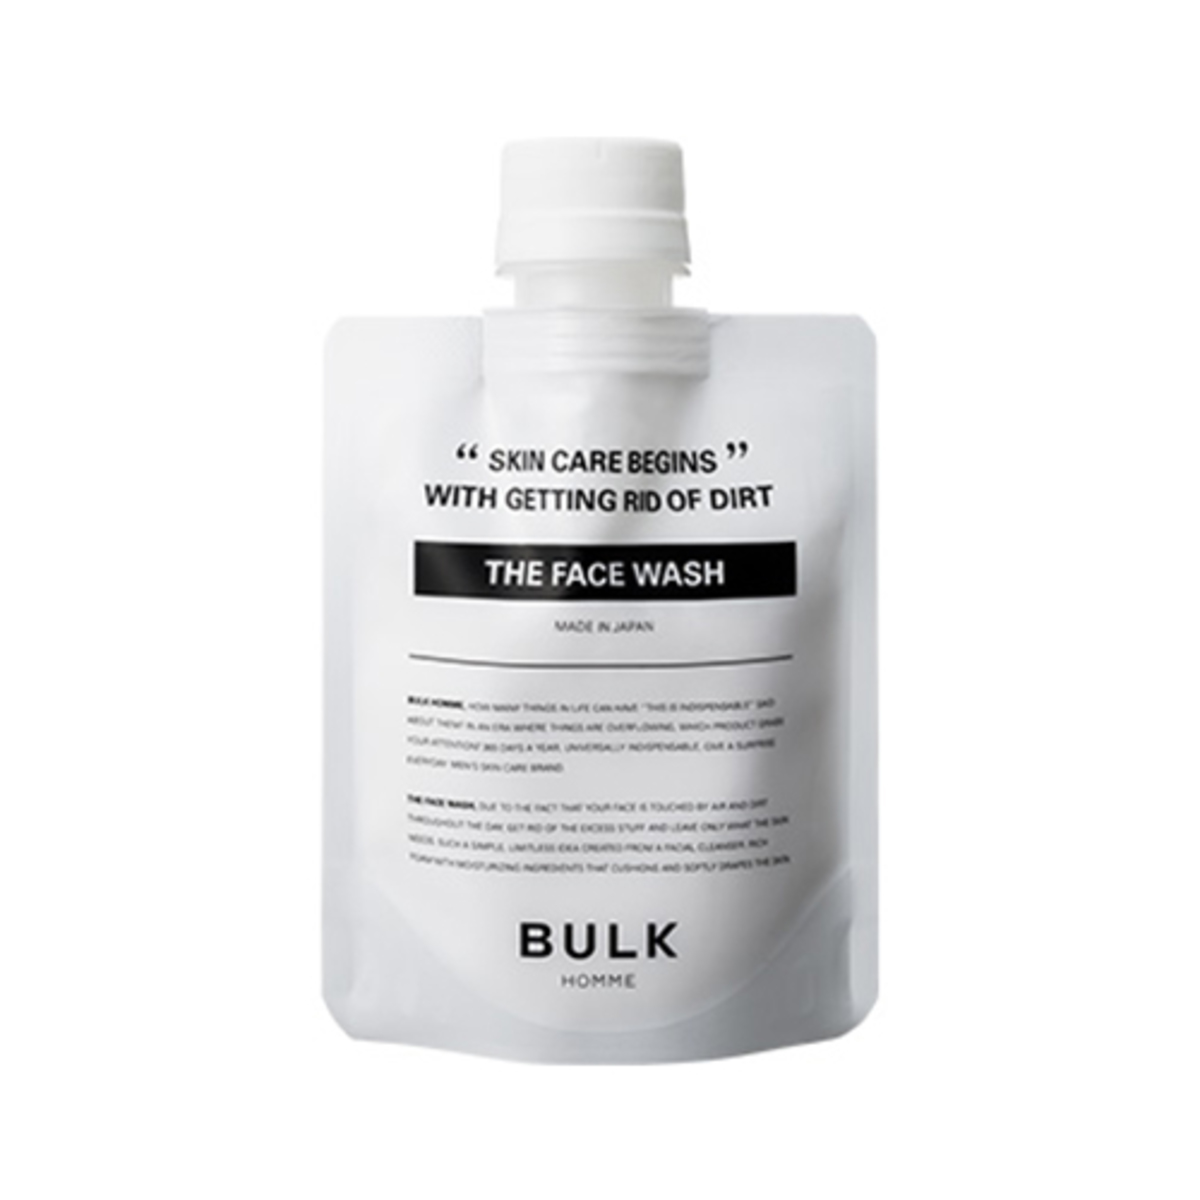 The Face Wash 100g